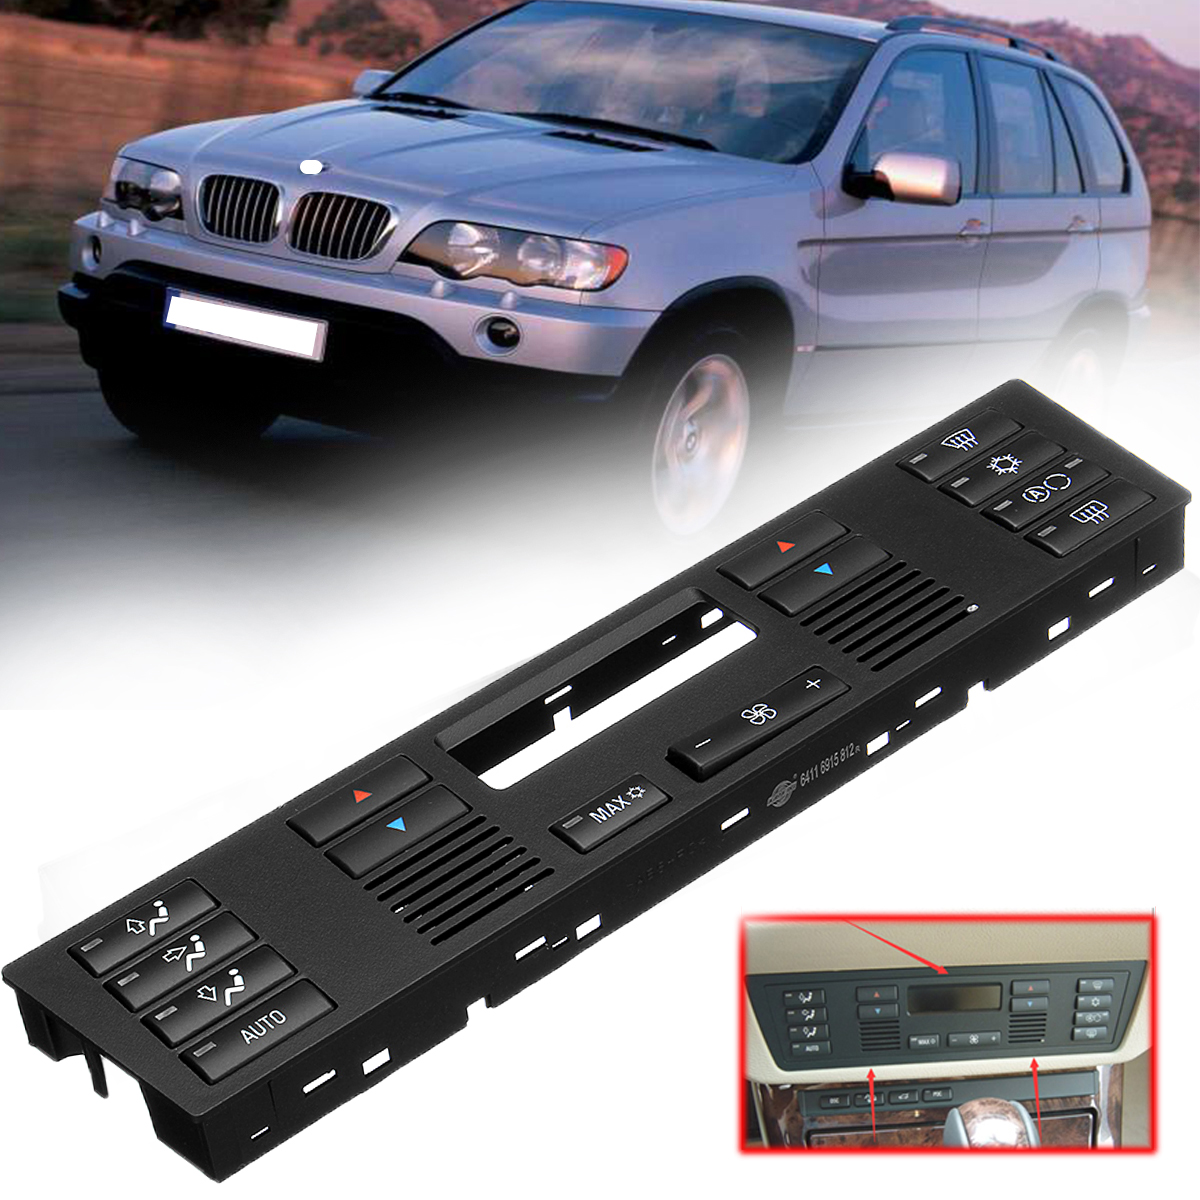 Car Air Conditioning Control Panel keys For BMW 5 Series E39 X5 E53 ABS Plastic Heater Control Air-conditioning Seat Switch